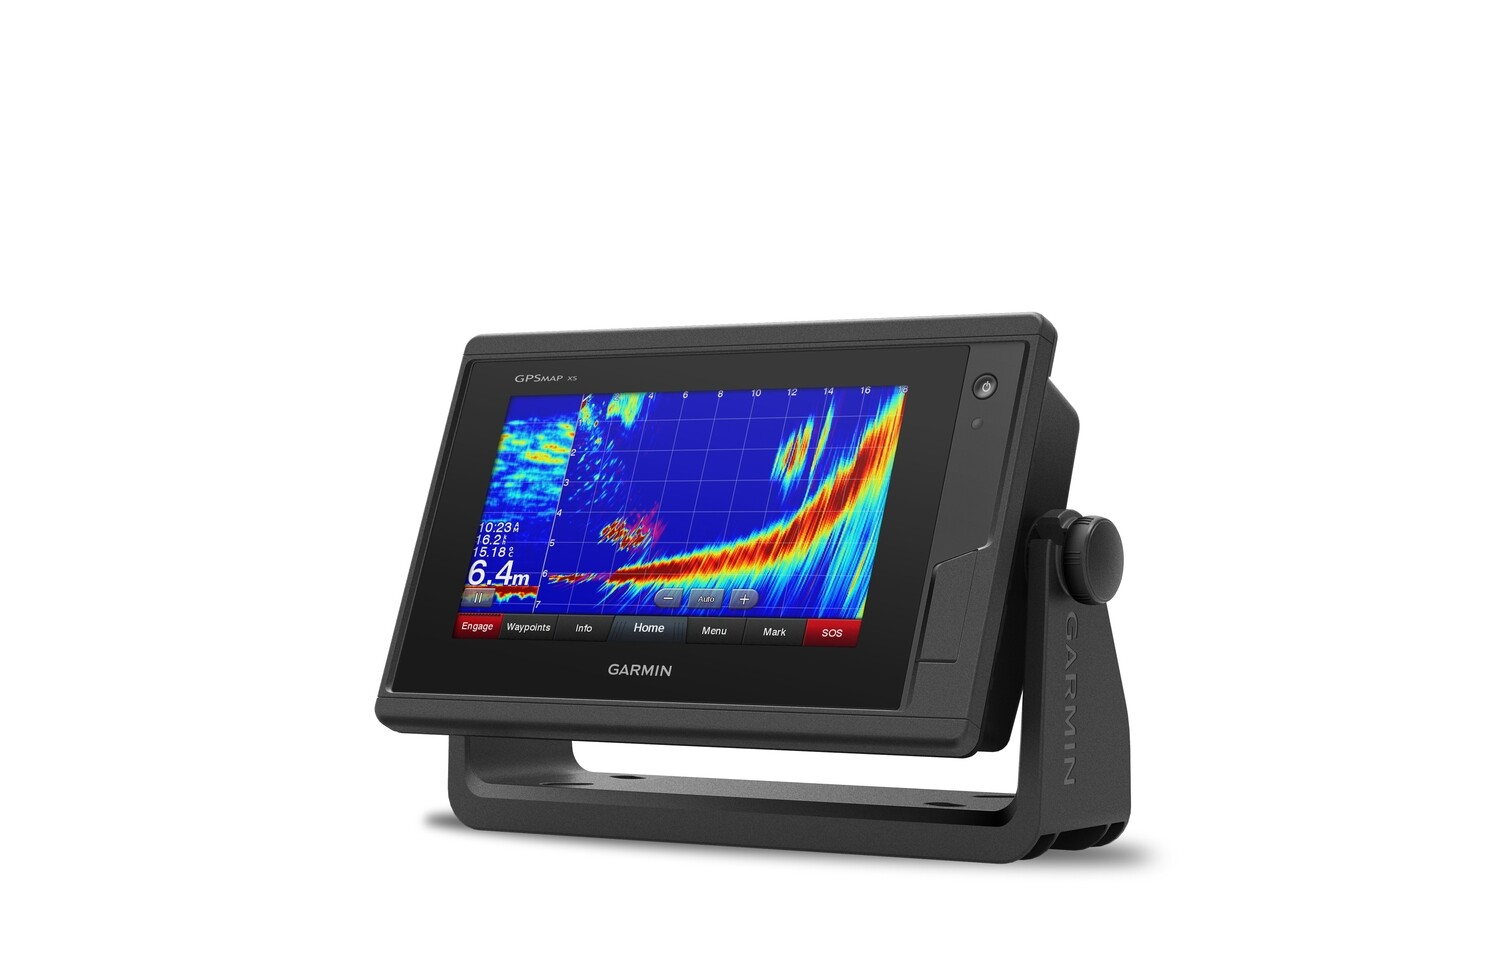 Garmin GPSMap 752xs combo package including map and transducer